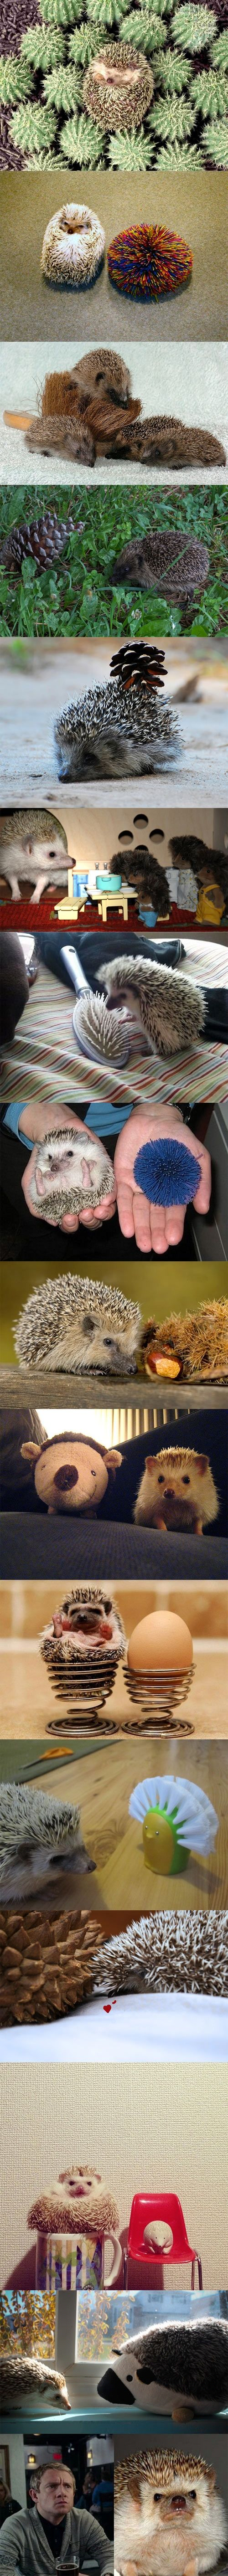 A hedgehog's life.   CLICK THIS PIN to visit my DAILY TOP 10 PINS!